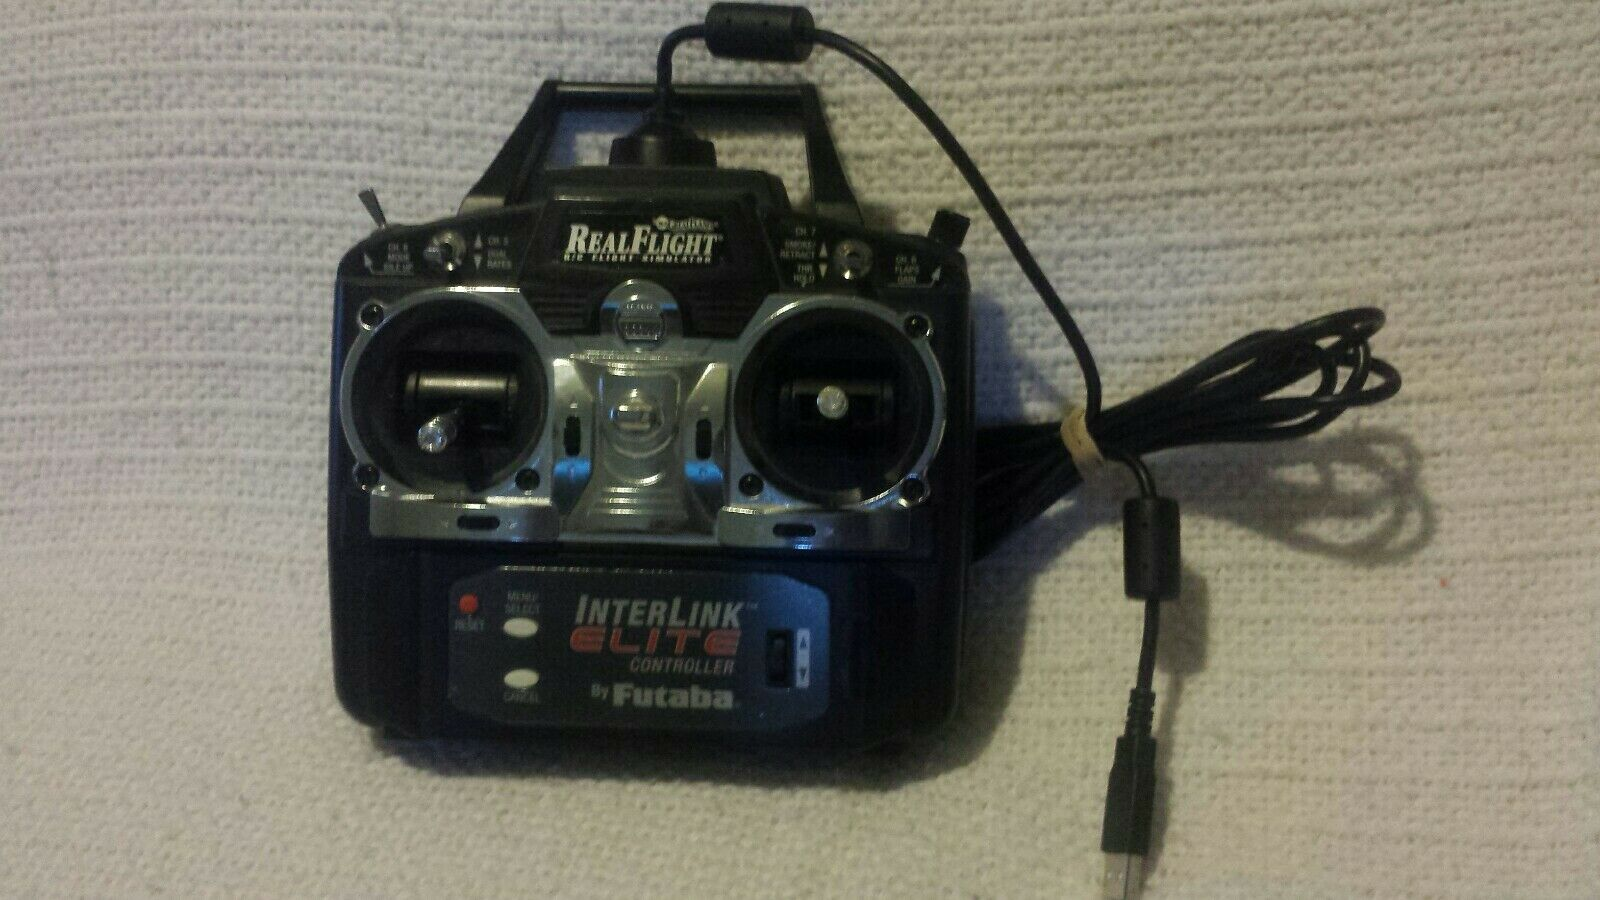 Genuine Real Flight R C Simulator G4 W InterLink Elite Controller by Futaba